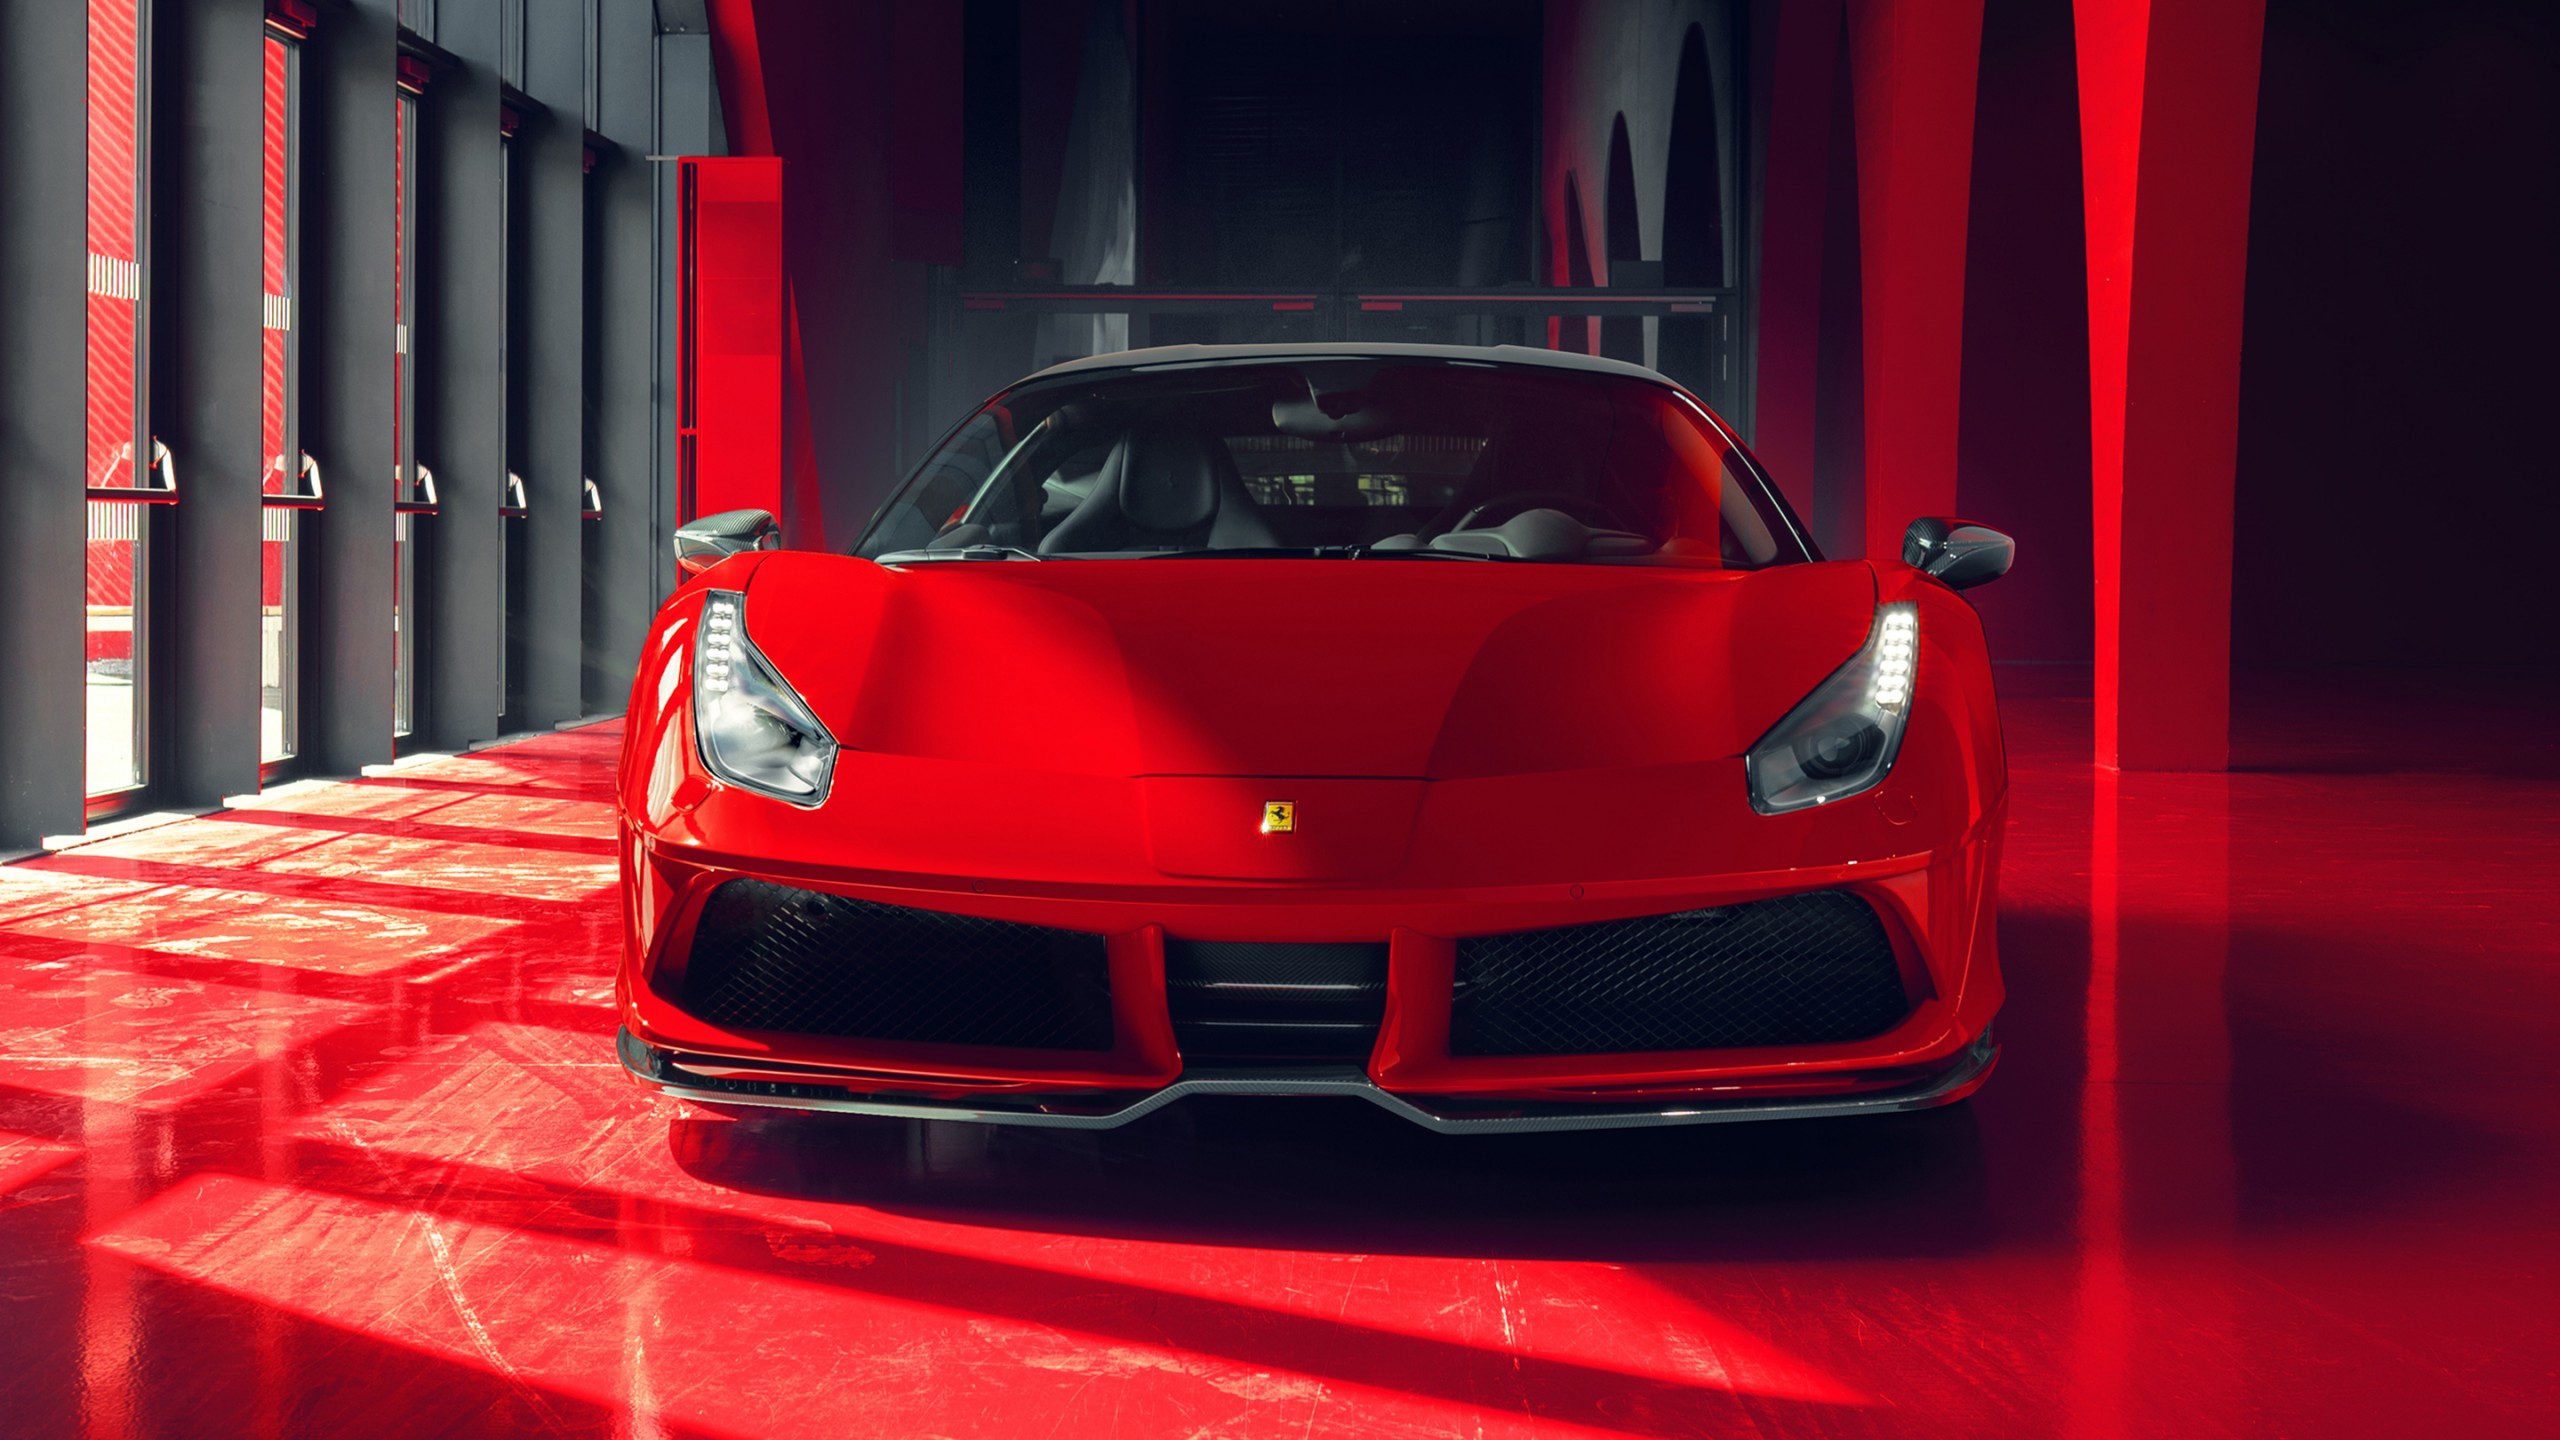 Best Concept Cars Wallpapers 2018 Pogea Racing Fplus Corsa Ferrari 488 Gtb Wallpaper